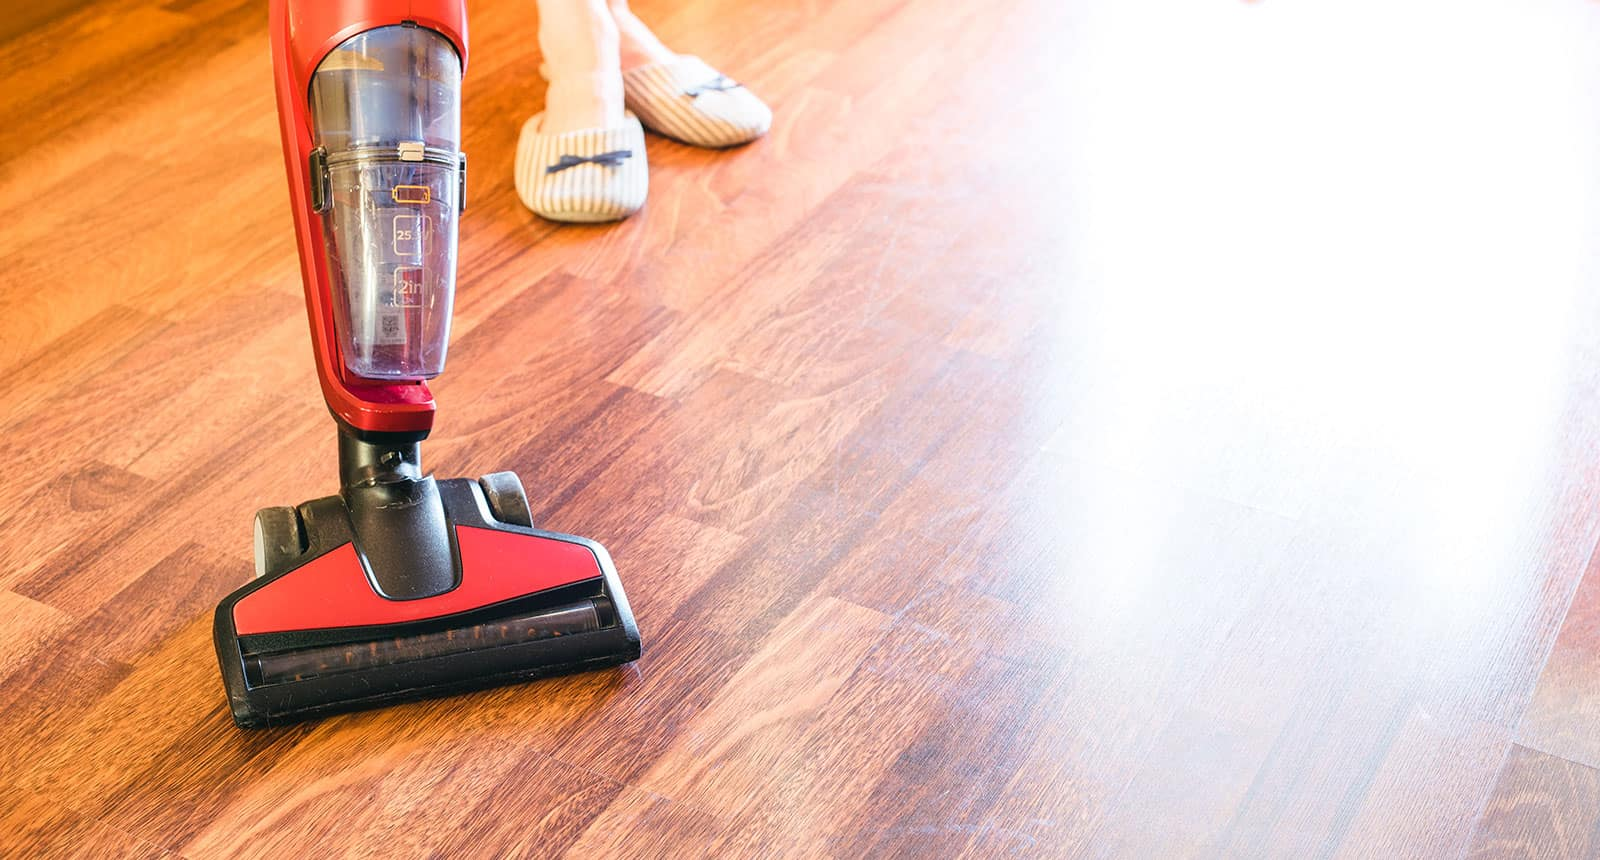 Best Shark Vacuum Cleaners For Pet Hair